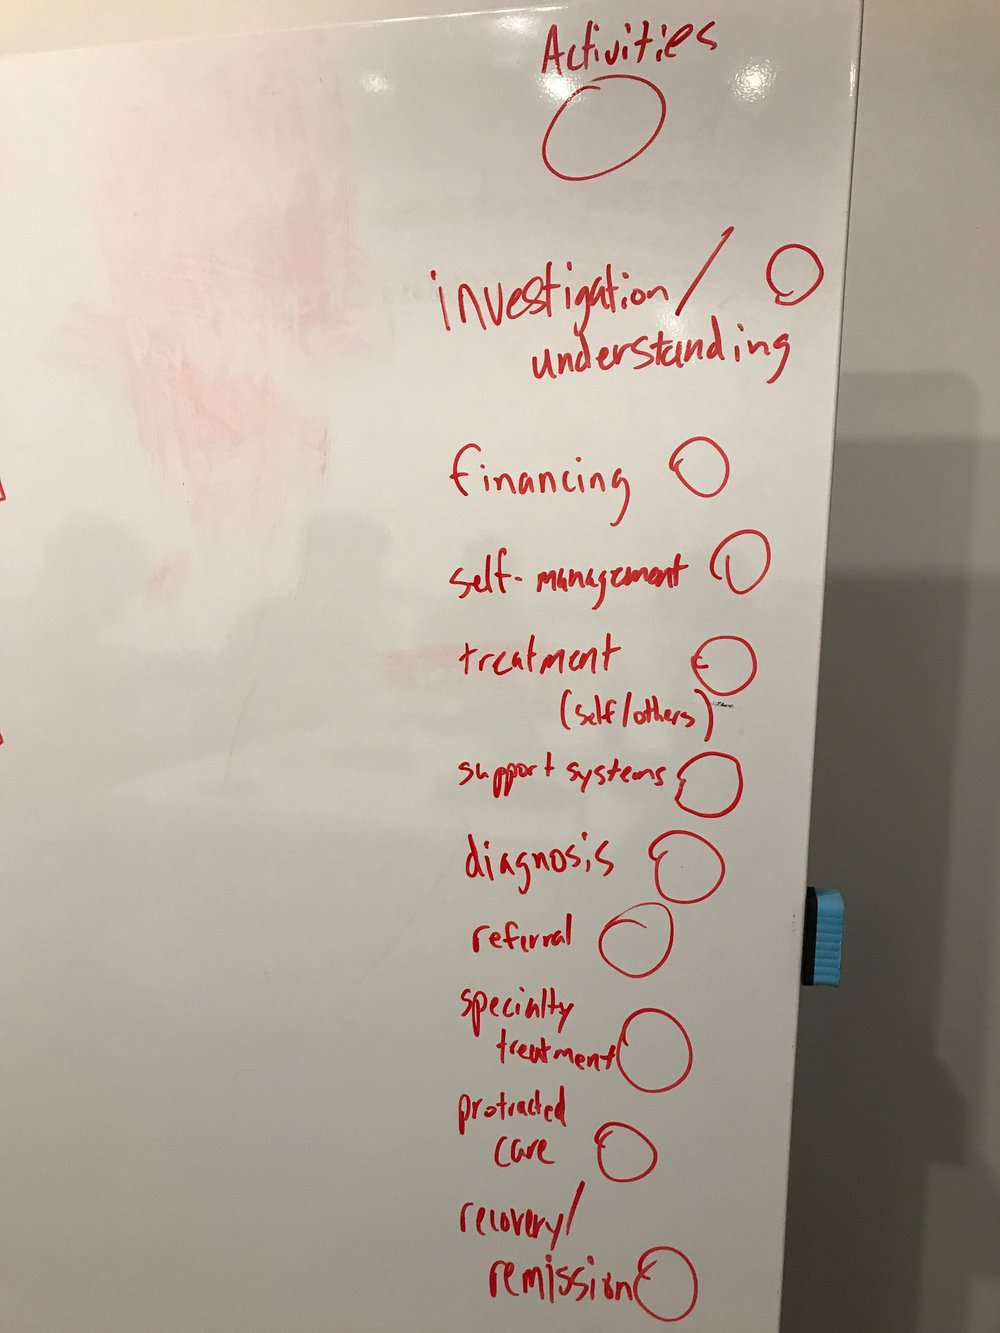 2. We mapped some of the phases and actions that take place in chronic disease (the circles are annotations to help the team remember what things are classified as)